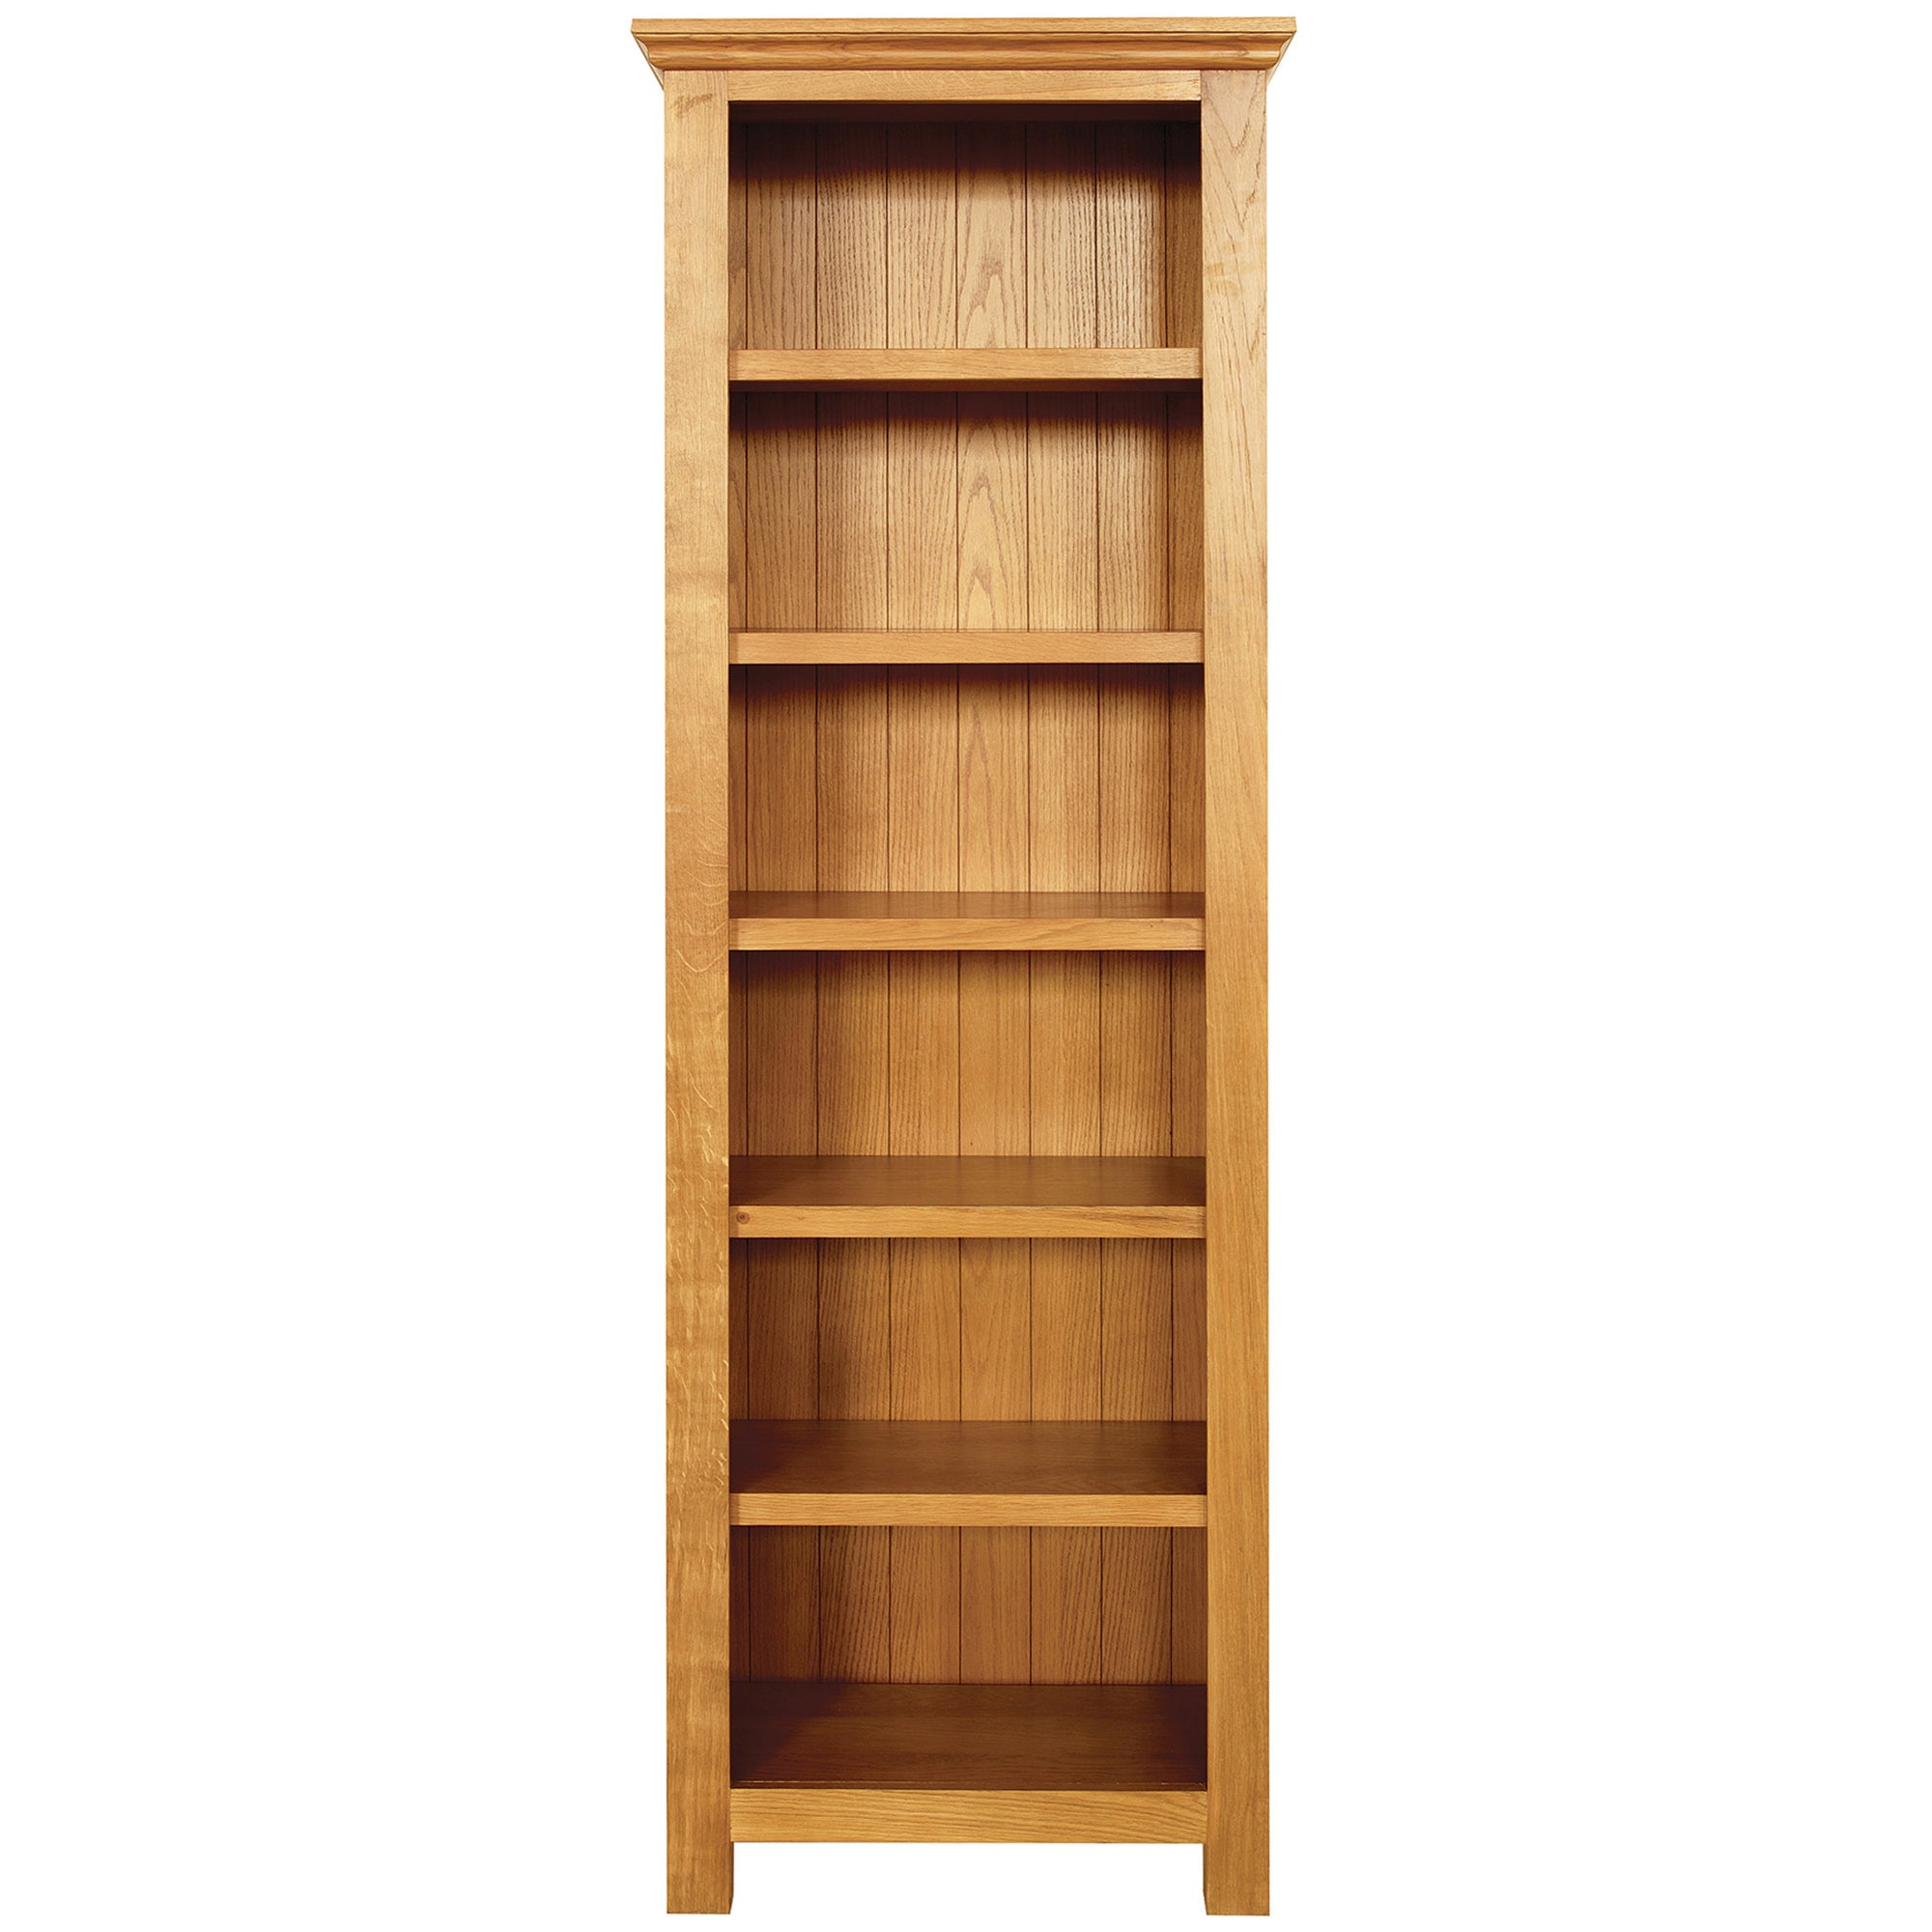 Dorchester Oak Bookcase